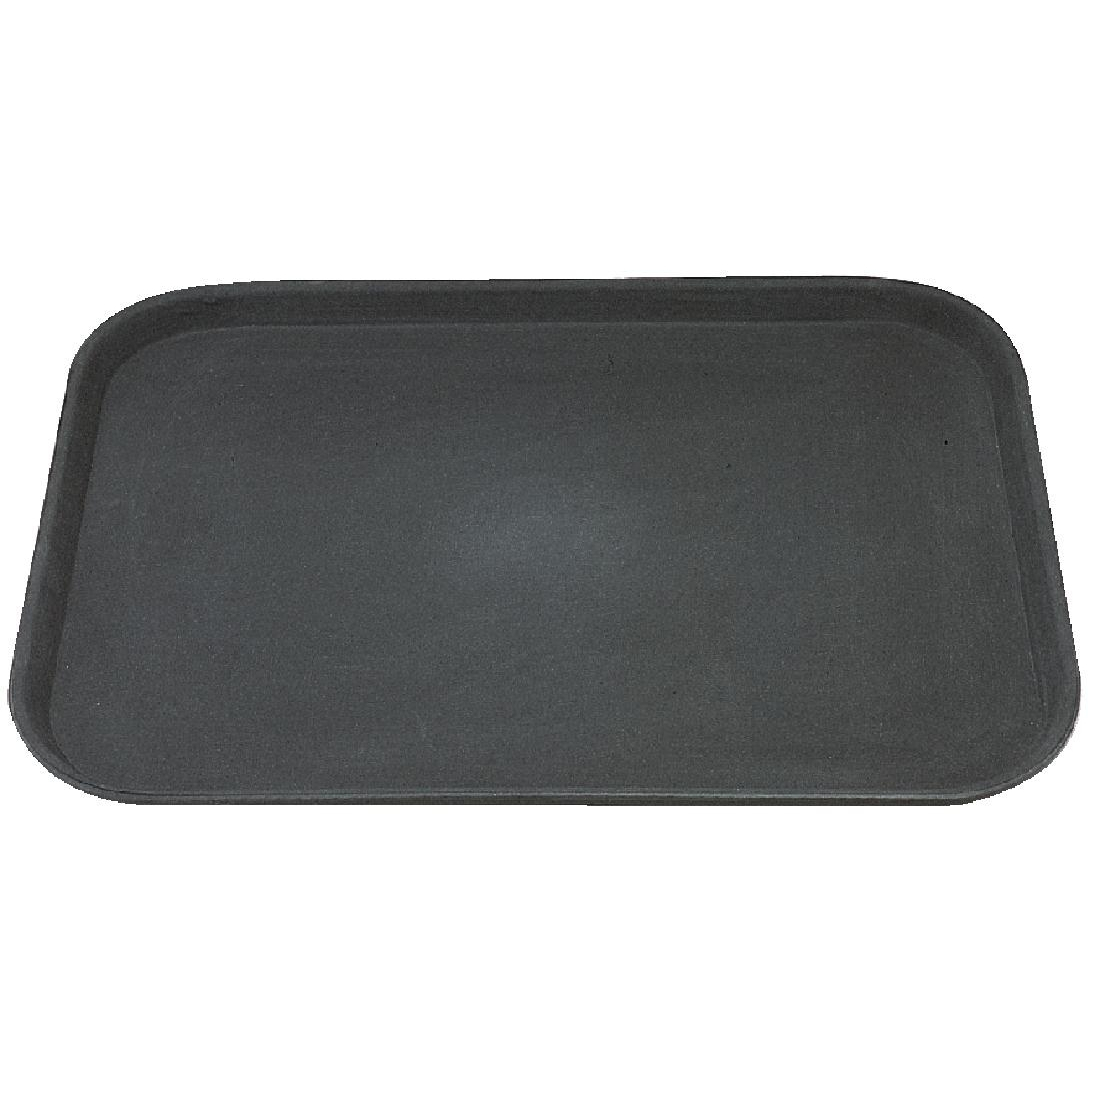 Kristallon Plastic Non Slip Tray Black 15 x 20 in